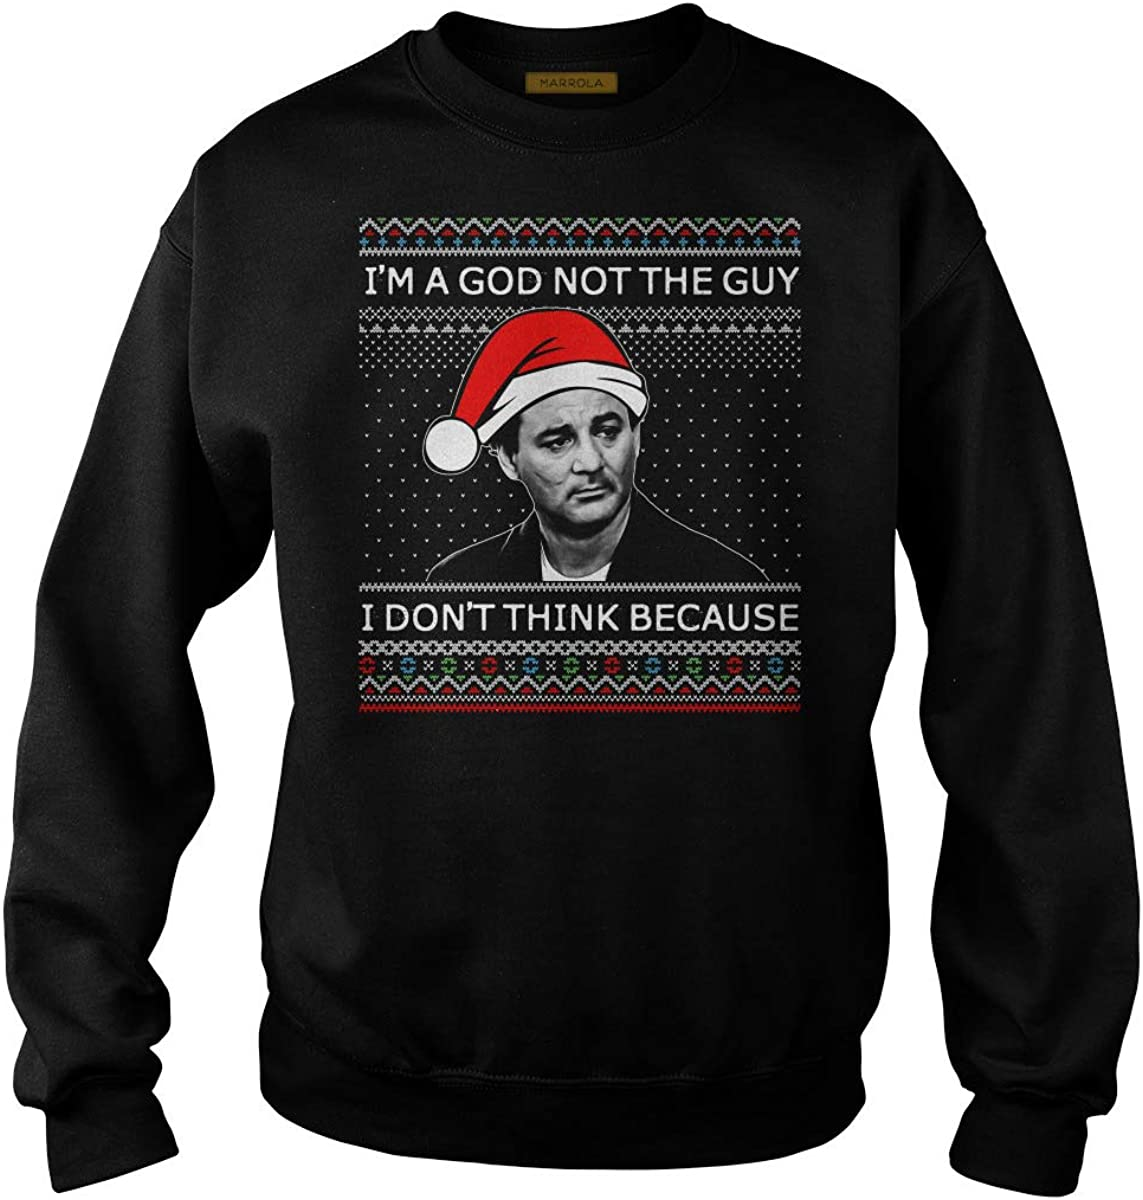 Im A God Not The Guy Ugly Christmas T-Shirt